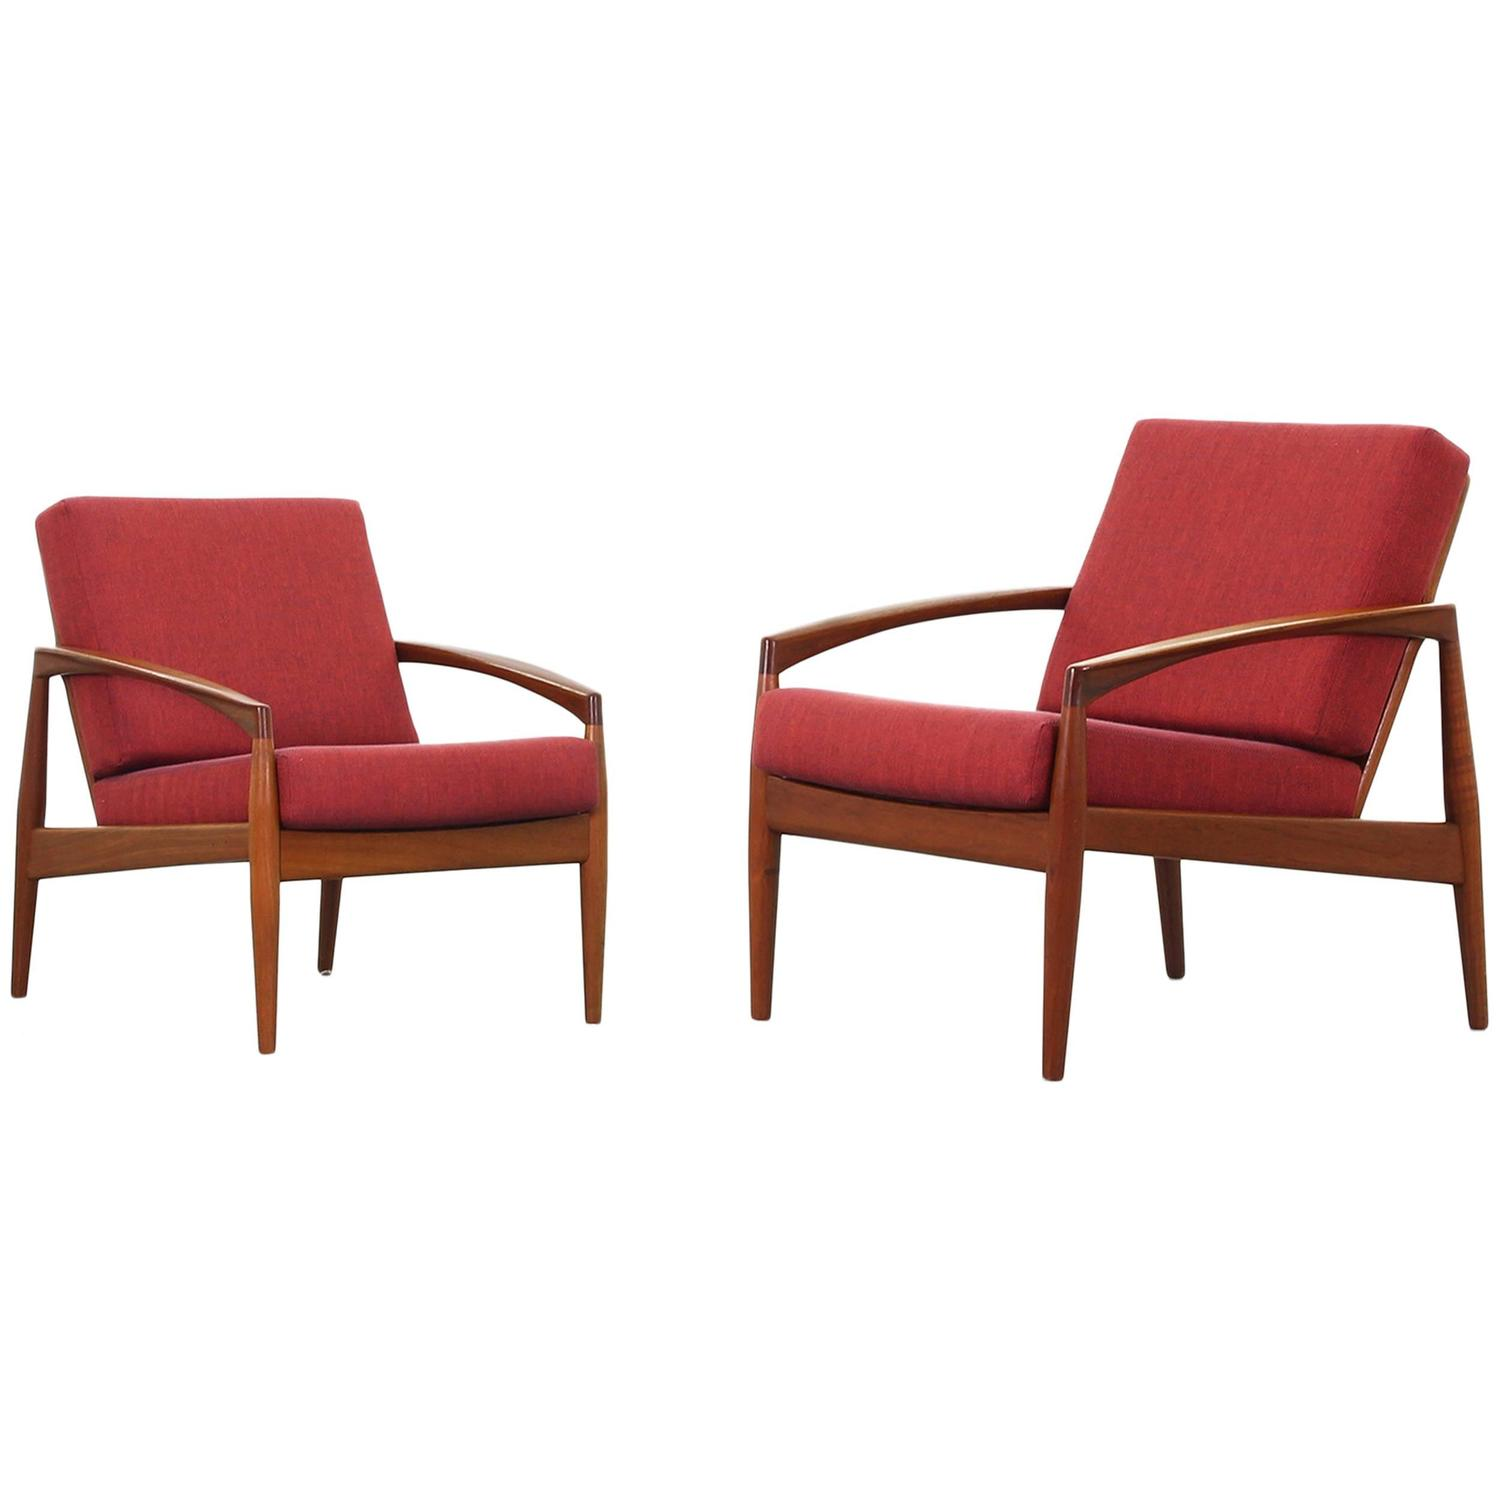 Beautiful pair of lounge chairs paperknife by kai kristiansen for magnus olesen at 1stdibs - Kai kristiansen chairs ...